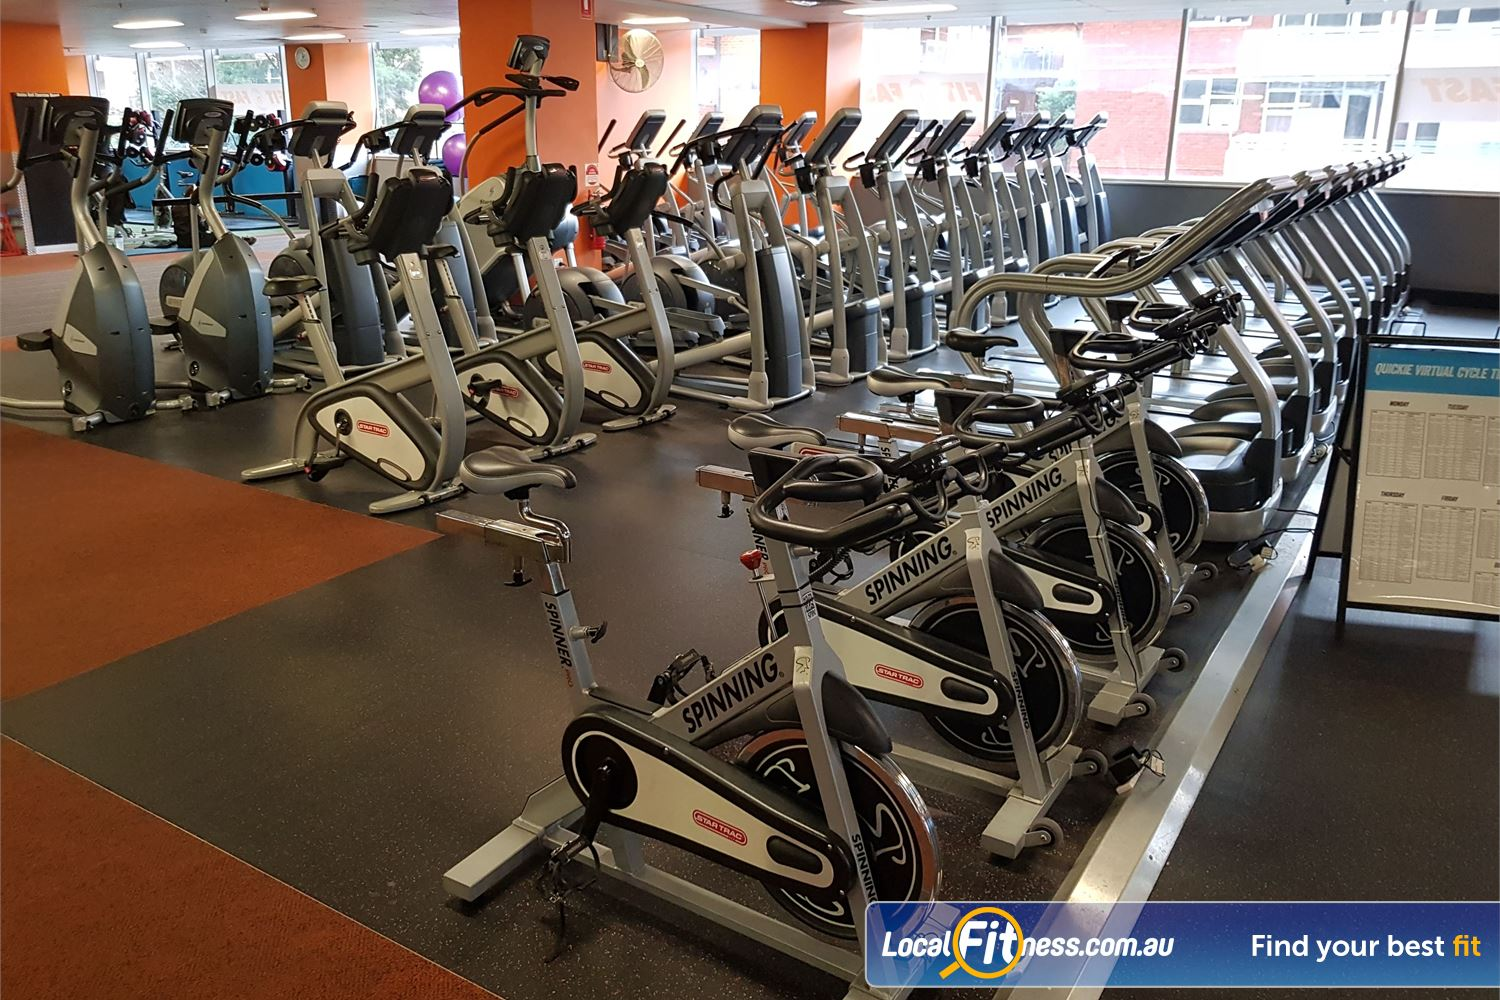 Fit n Fast Burwood Row and rows of cardio machines so you don't have to wait.